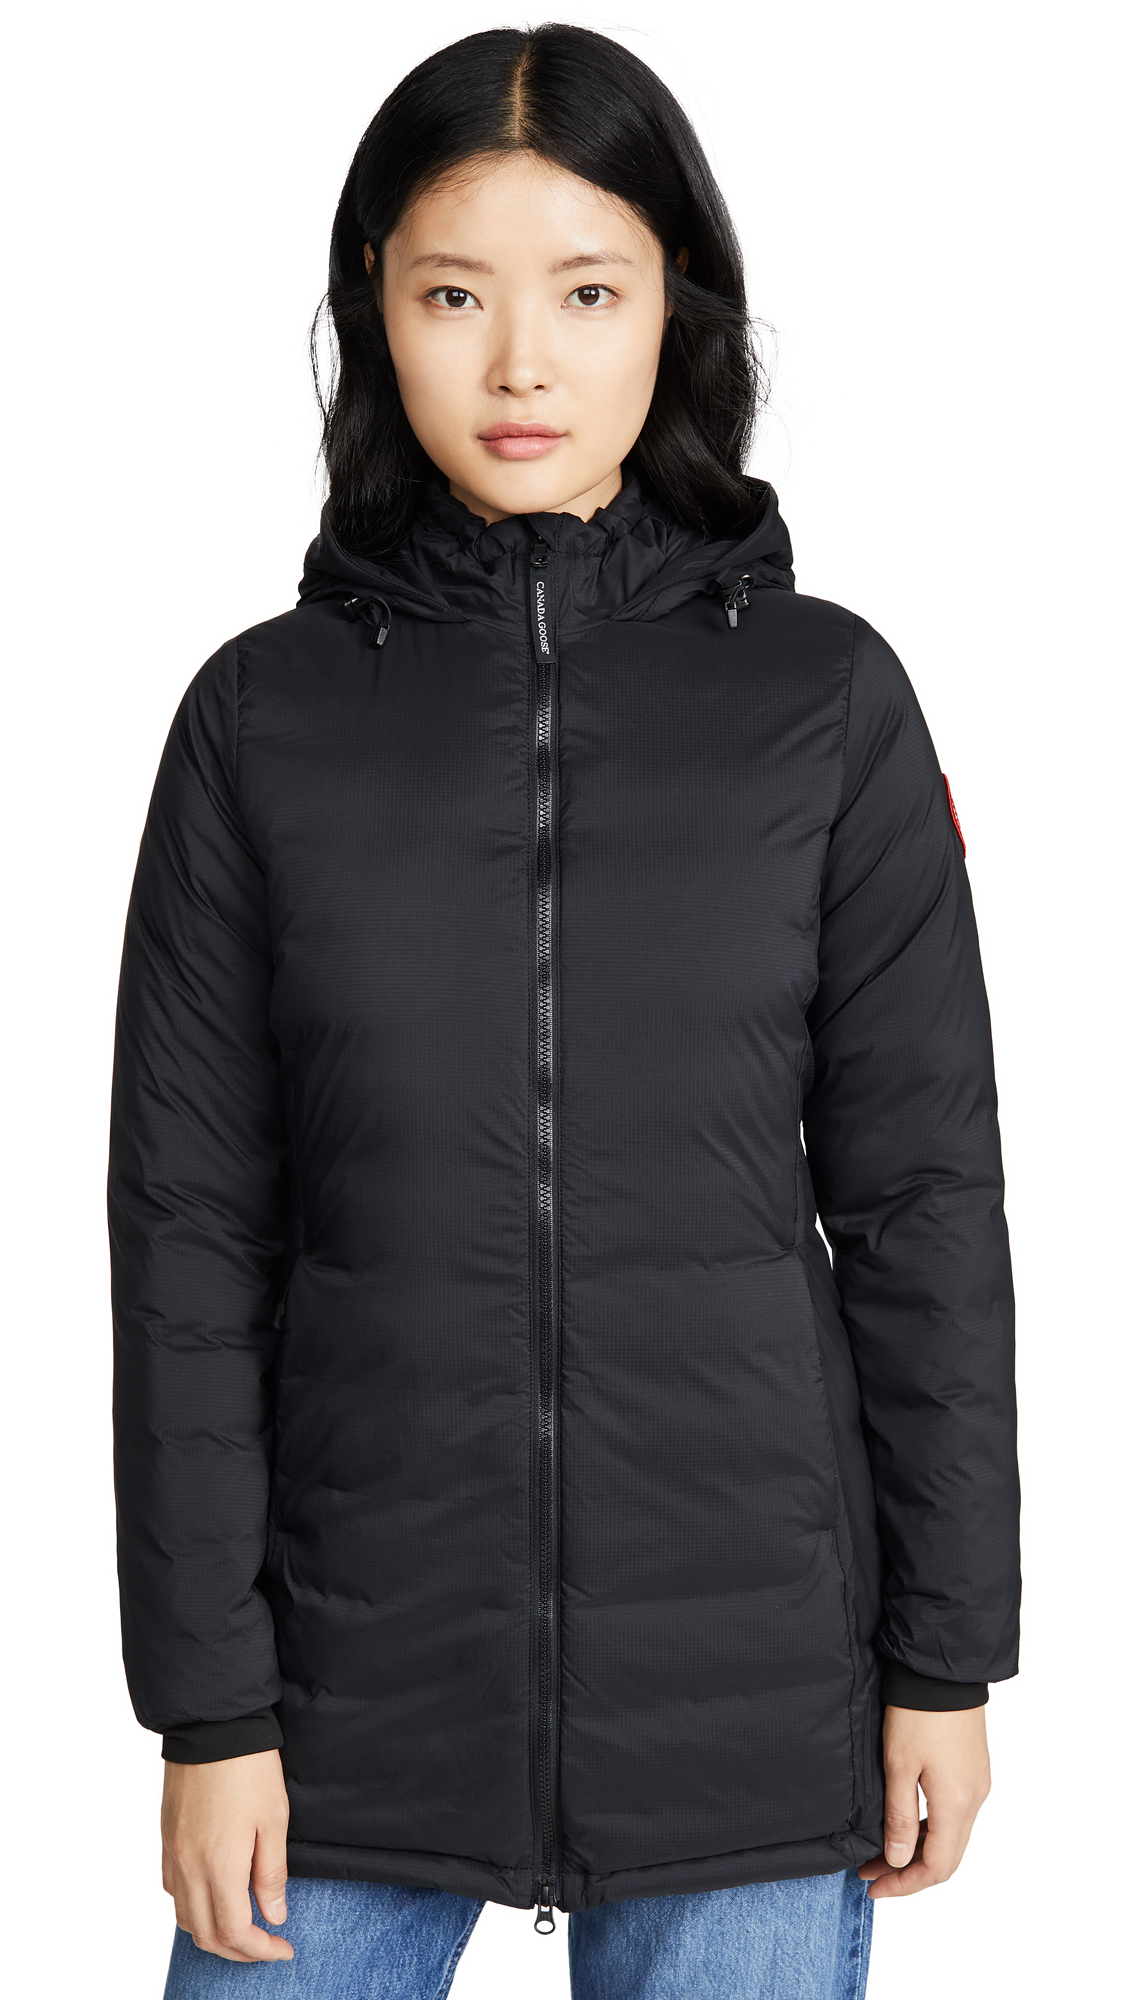 Buy Canada Goose Camp Hooded Jacket online beautiful Canada Goose Jackets, Coats, Down Jackets